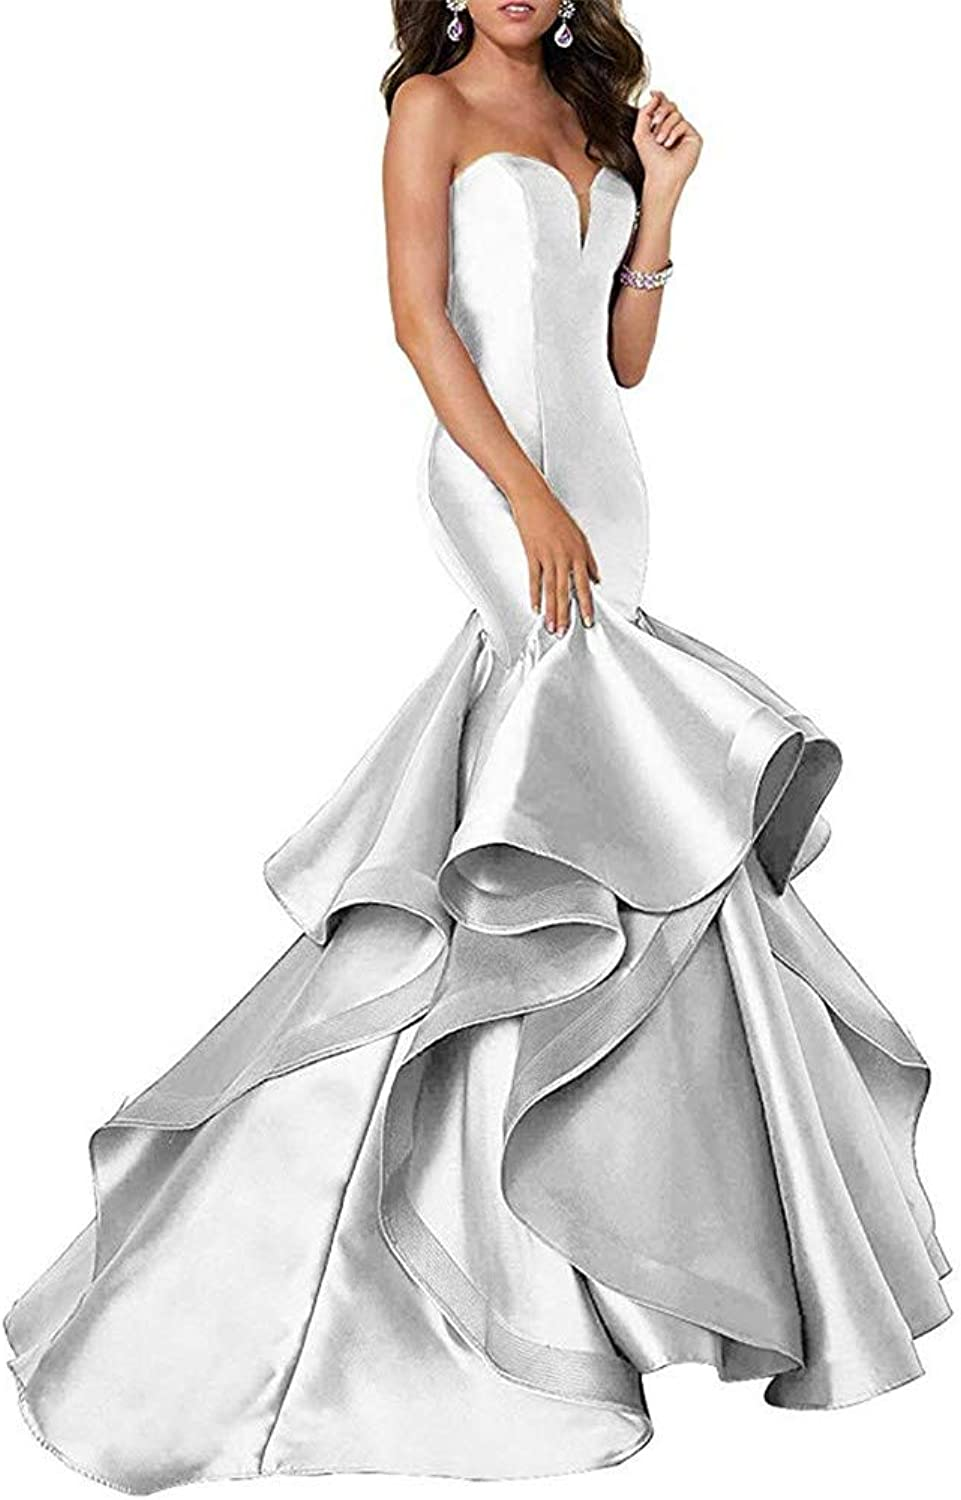 Ai Maria Women's Sweetheart Mermaid Prom Evening Party Dresses Tiered Formal Dress